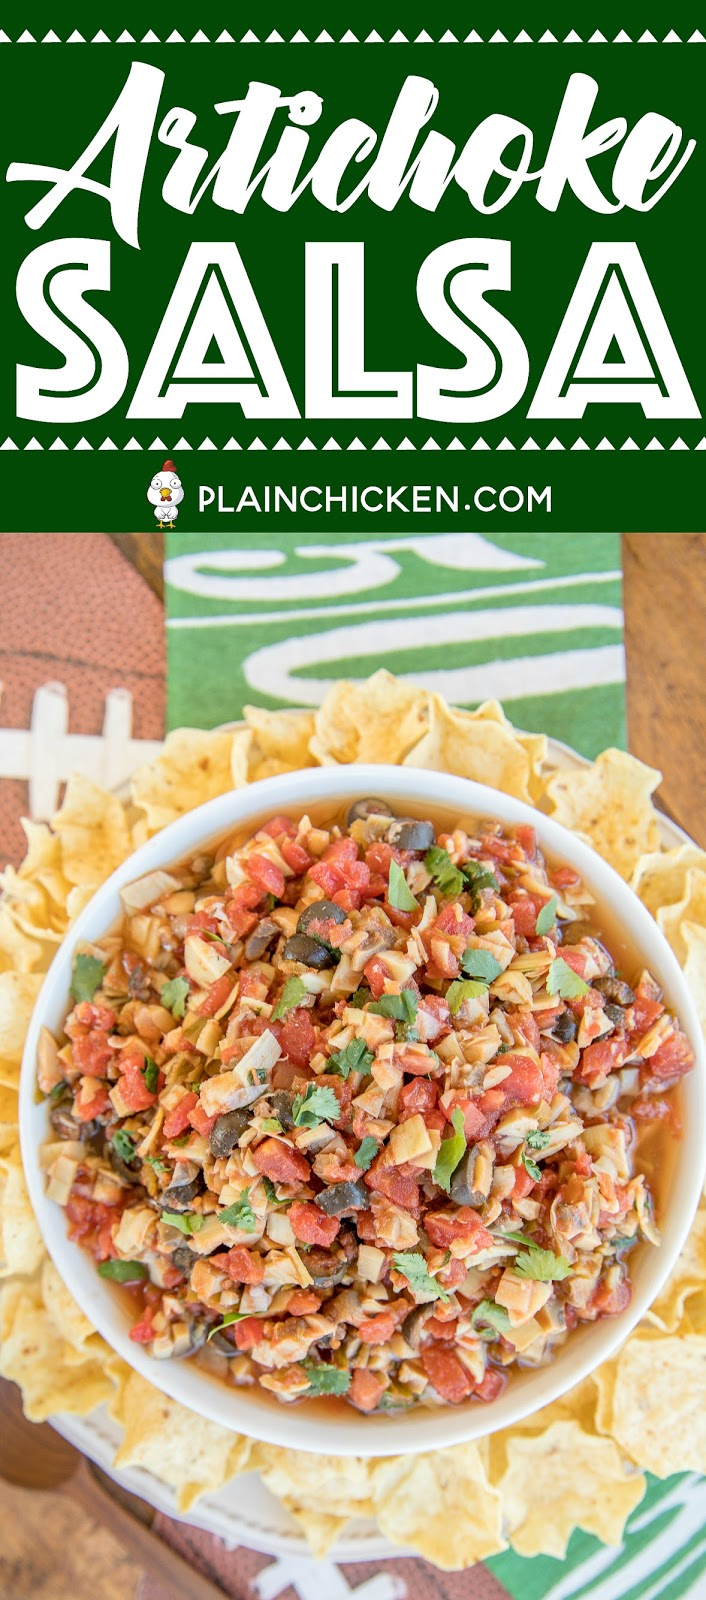 Artichoke Salsa - CRAZY good!! Artichokes, diced tomatoes and green chiles, mushrooms, black olives, red wine vinegar, cilantro, garlic slat and hot sauce. Serve with chips or spoon over grilled chicken. I took this to a dinner party and there were no leftovers! Everyone asked for the recipe!! A big hit! #salsa #veggies #dip #partyfood